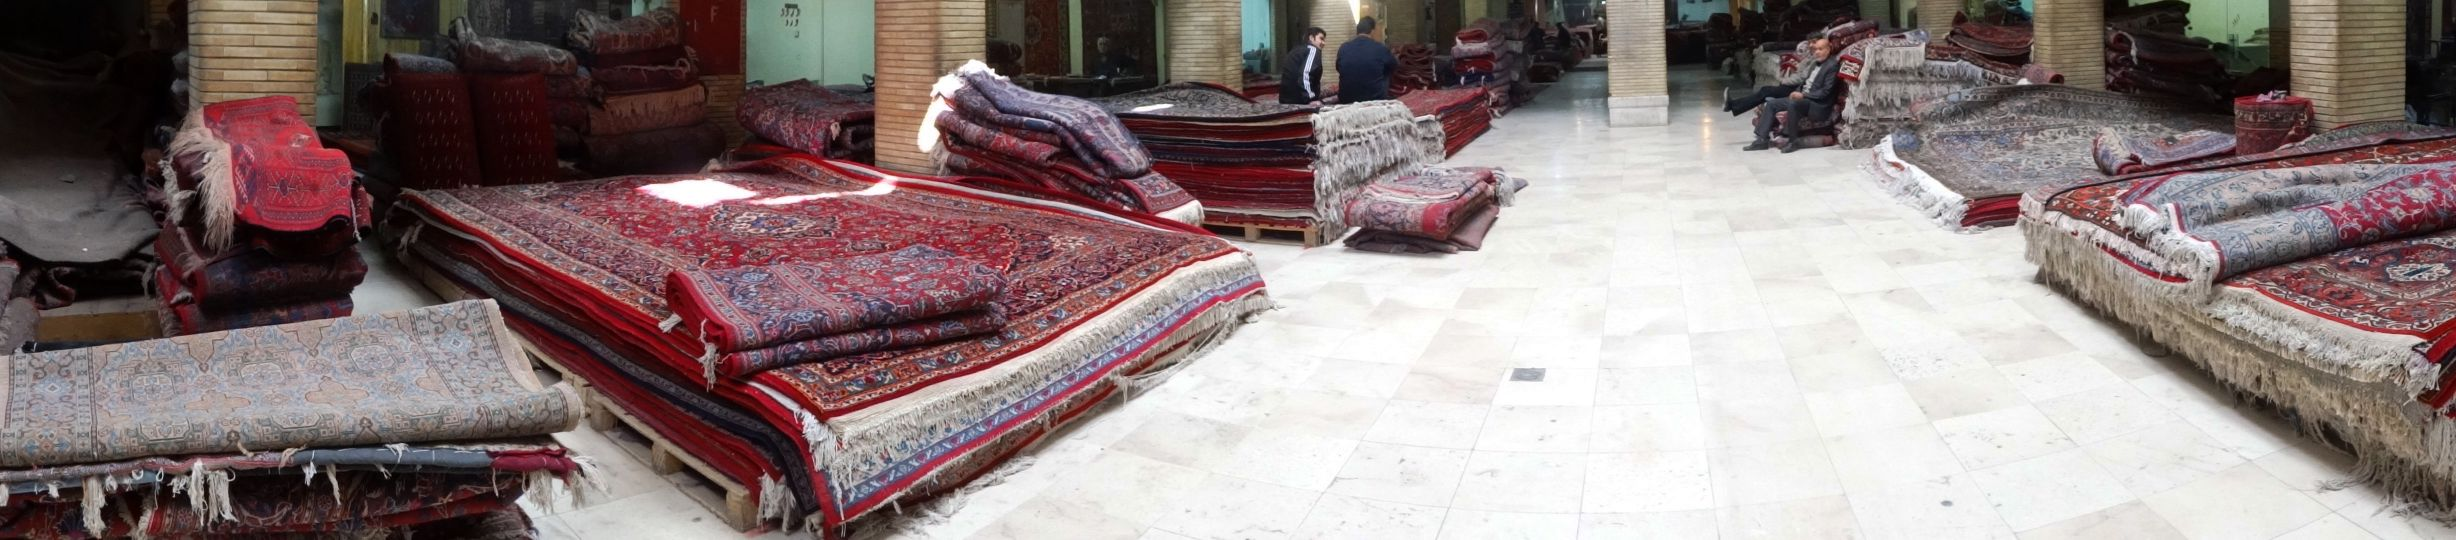 Tabriz bazaar - carpets everywhere